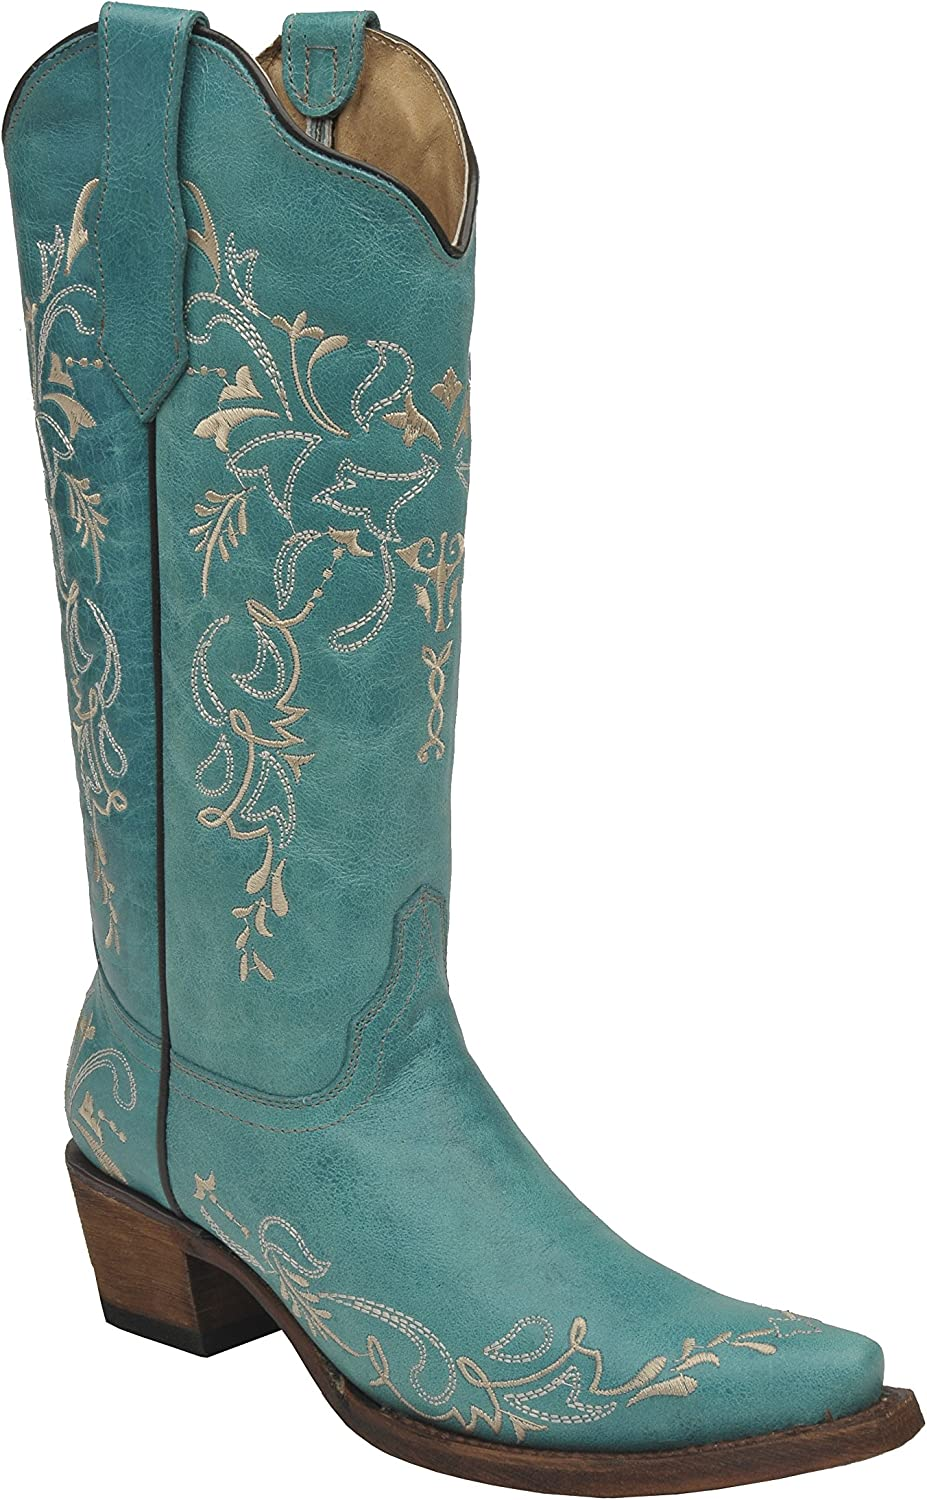 Corral Women/'s 12-inch Brown Turquoise//Beige Embroidery Snip Toe Pull-On...